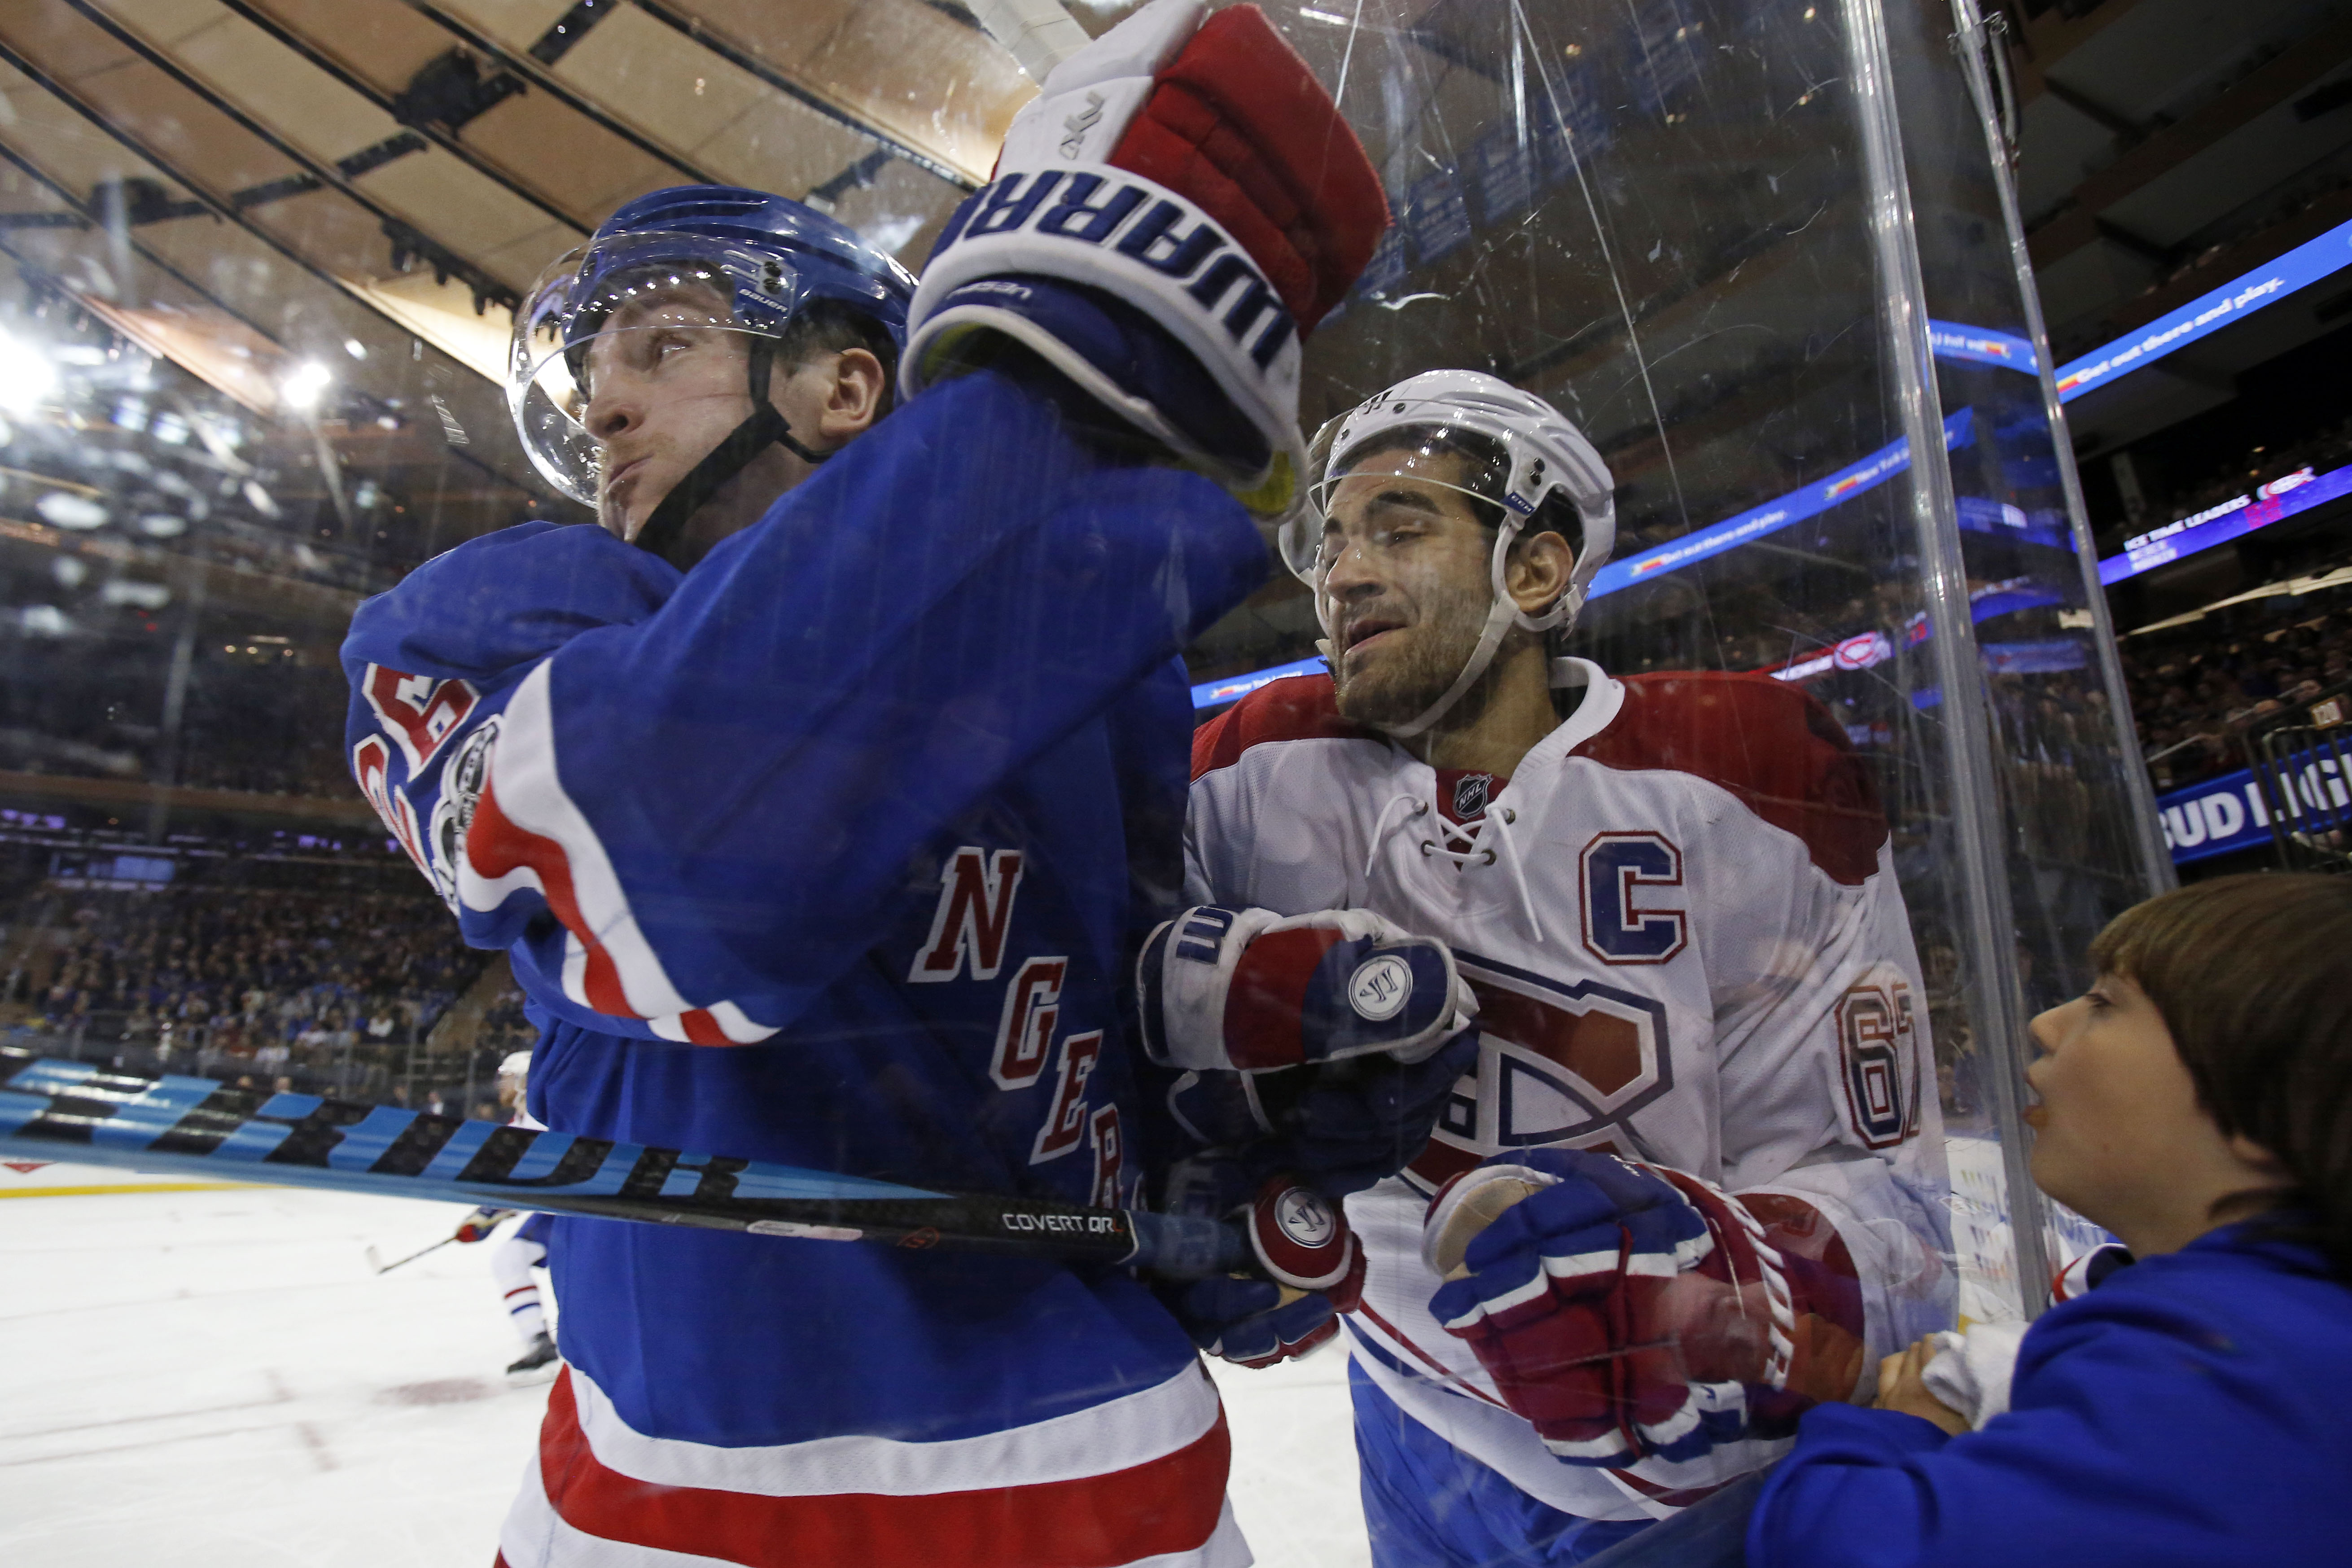 10019081-nhl-stanley-cup-playoffs-montreal-canadiens-at-new-york-rangers